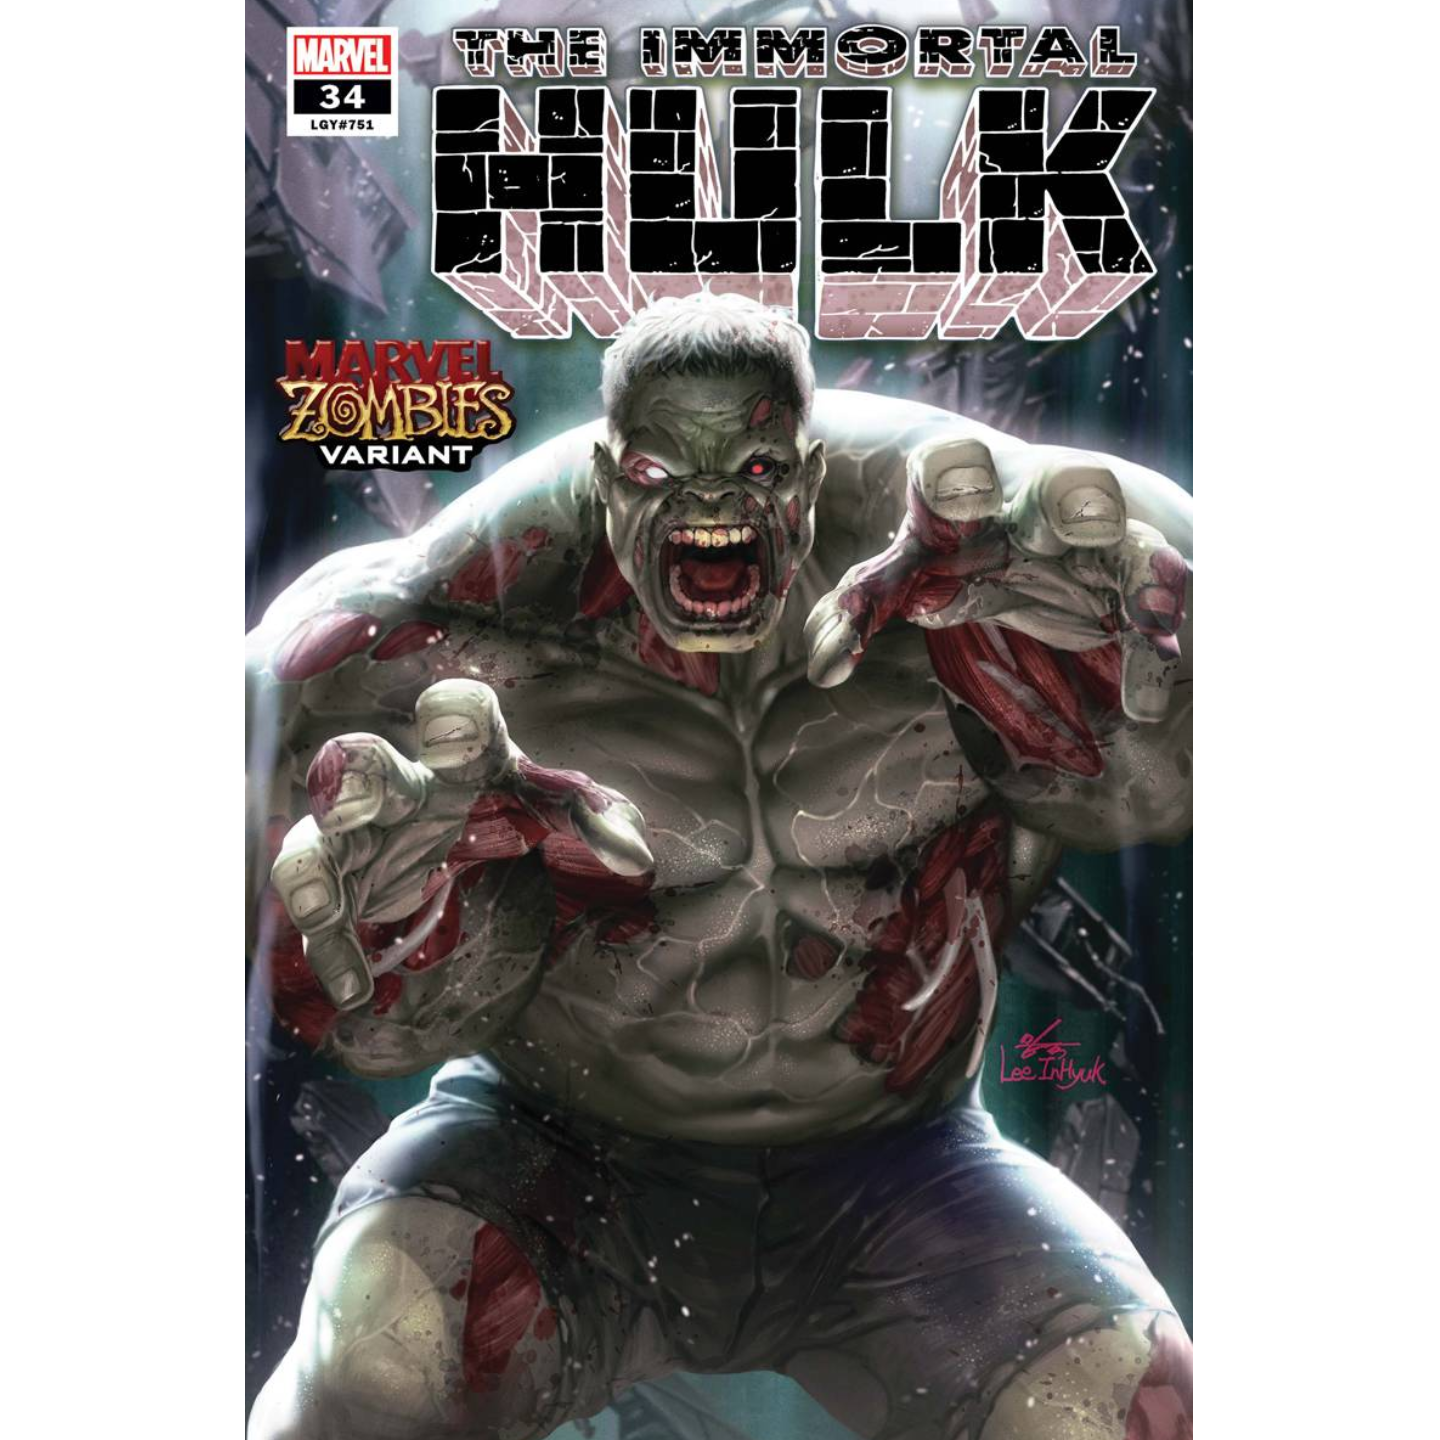 IMMORTAL HULK #34 INHYUK LEE MARVEL ZOMBIES VAR